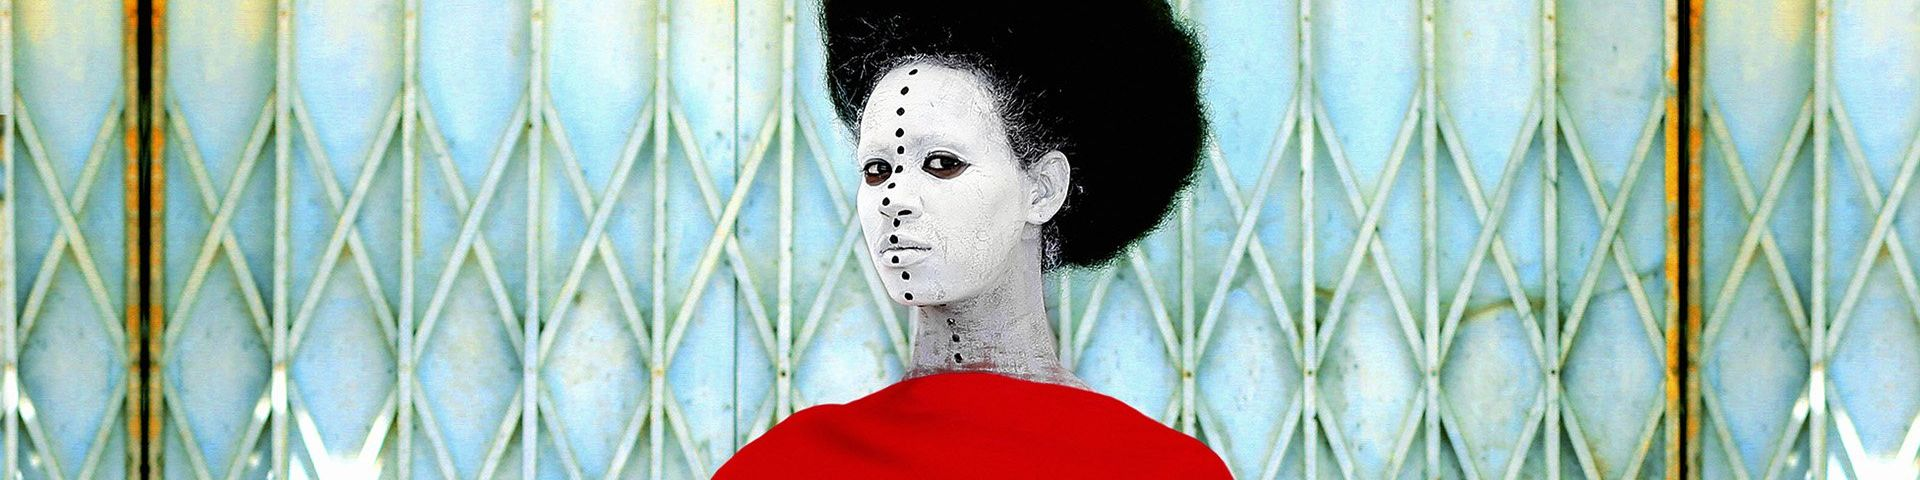 A woman stands in front of a rusting security grille. She wears a dramatic red cape and her head is framed by a halo of black hair. Her face is painted white and a line of black dots stretches from the top of her forehead to the base of her neck, which are inspired by traditional African body art.